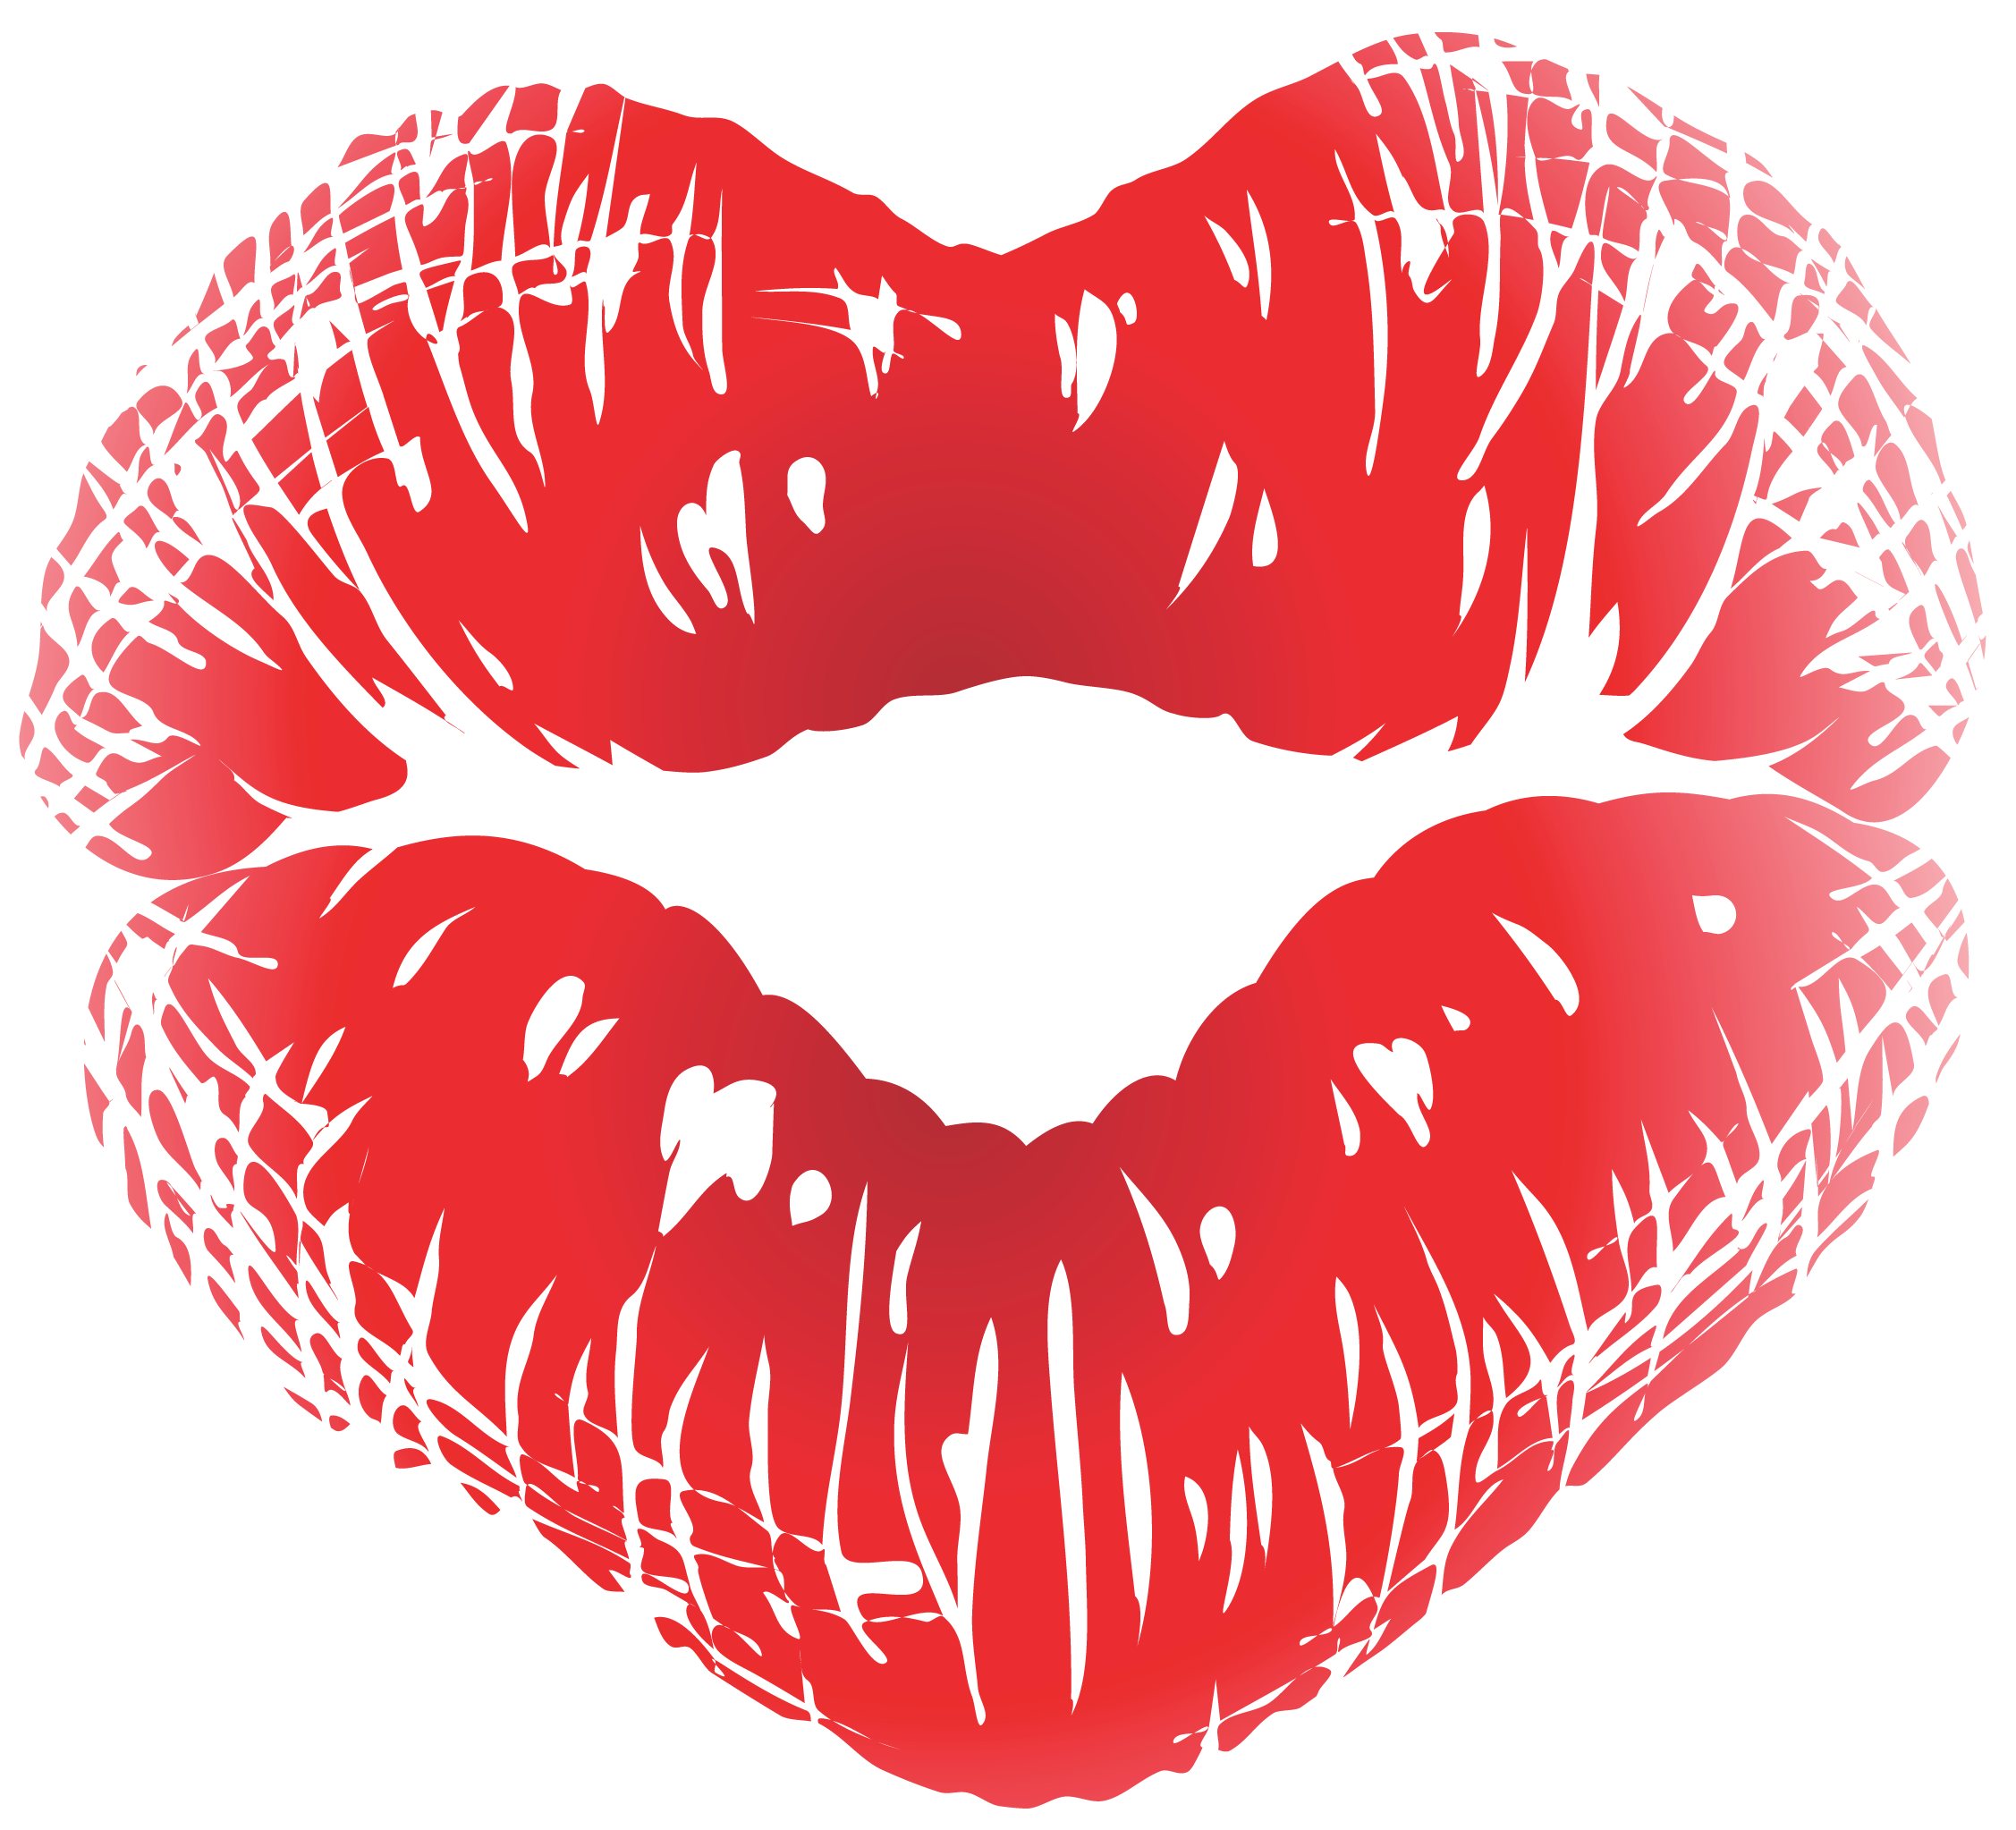 Free Kiss Cliparts, Download Free Clip Art, Free Clip Art on.